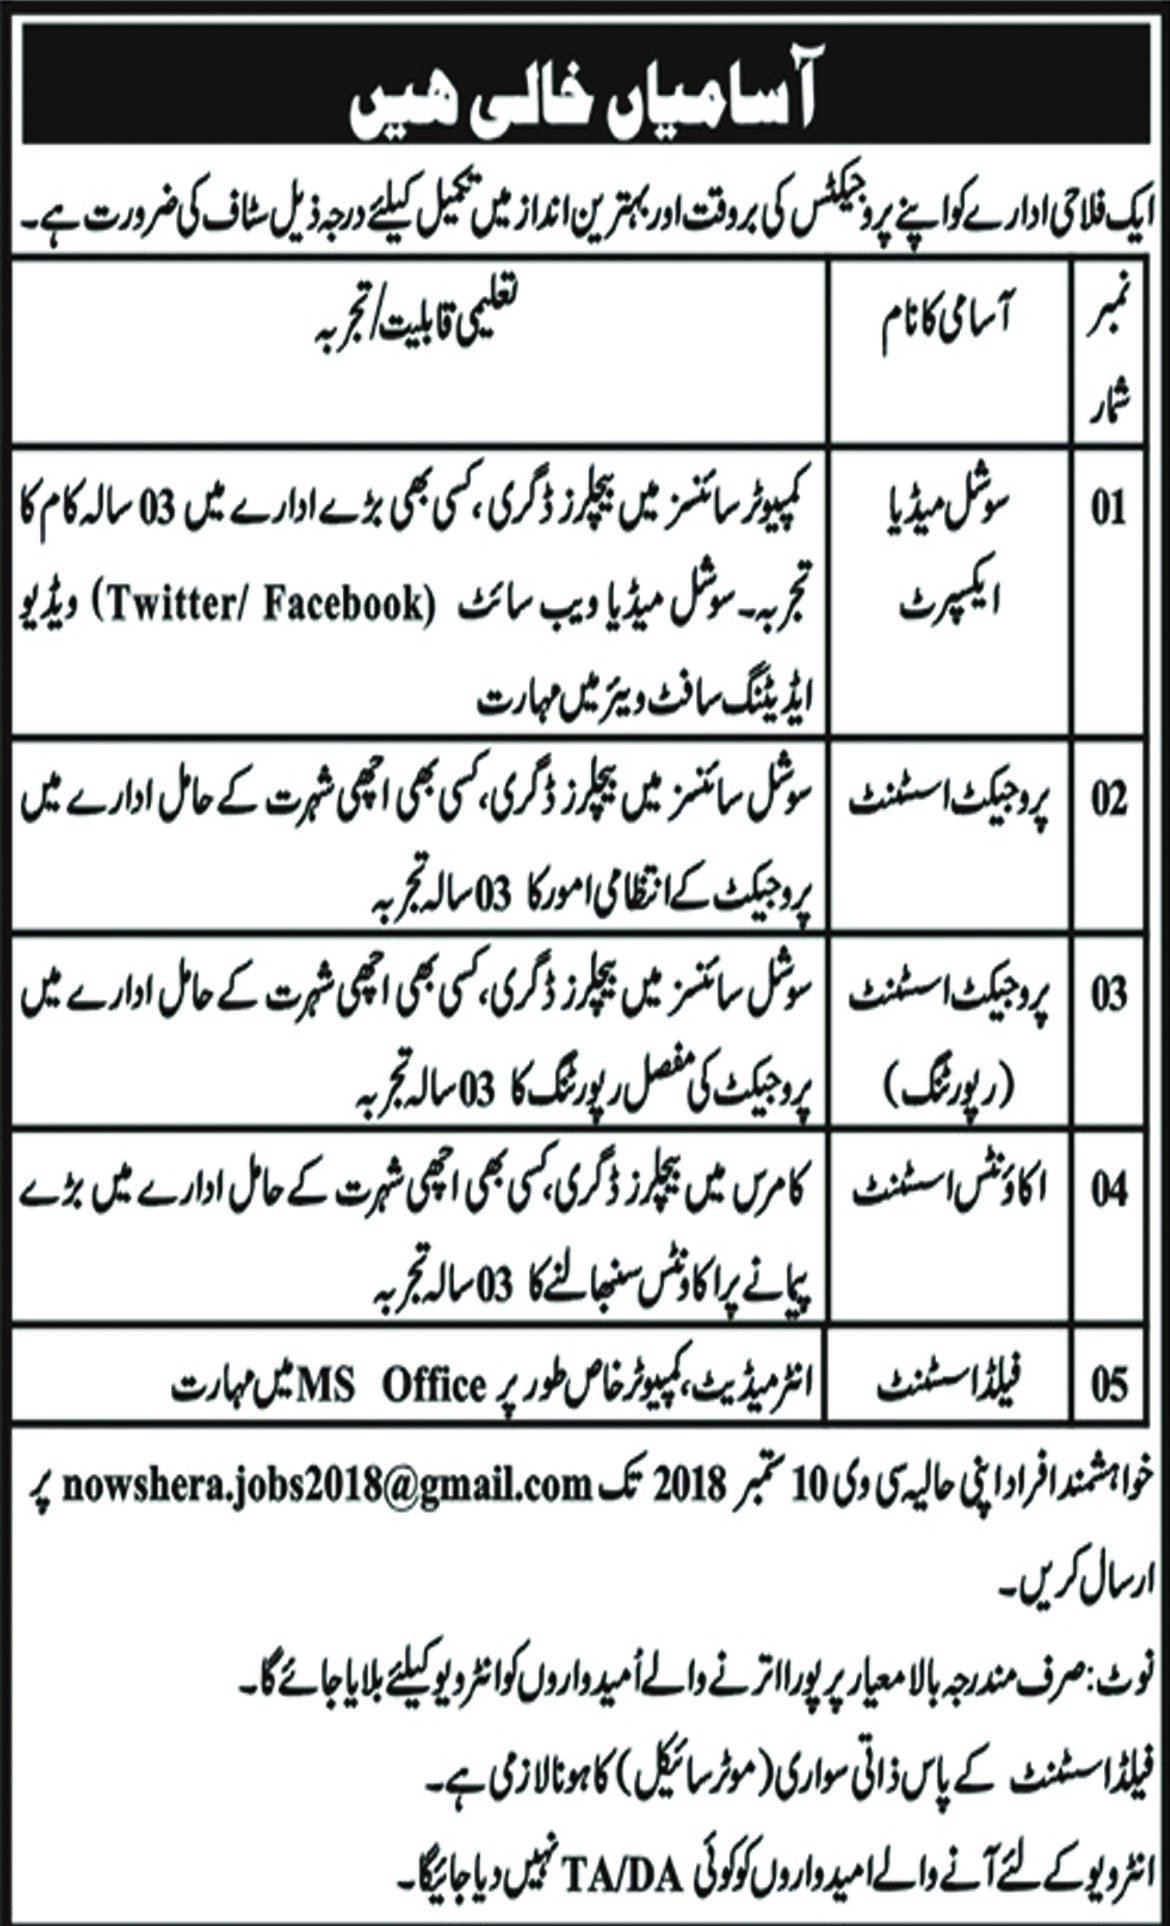 Jobs In Social Media Expert, Project Assistant, Accounts Assistant, Field Assistant 04 Sep 2018